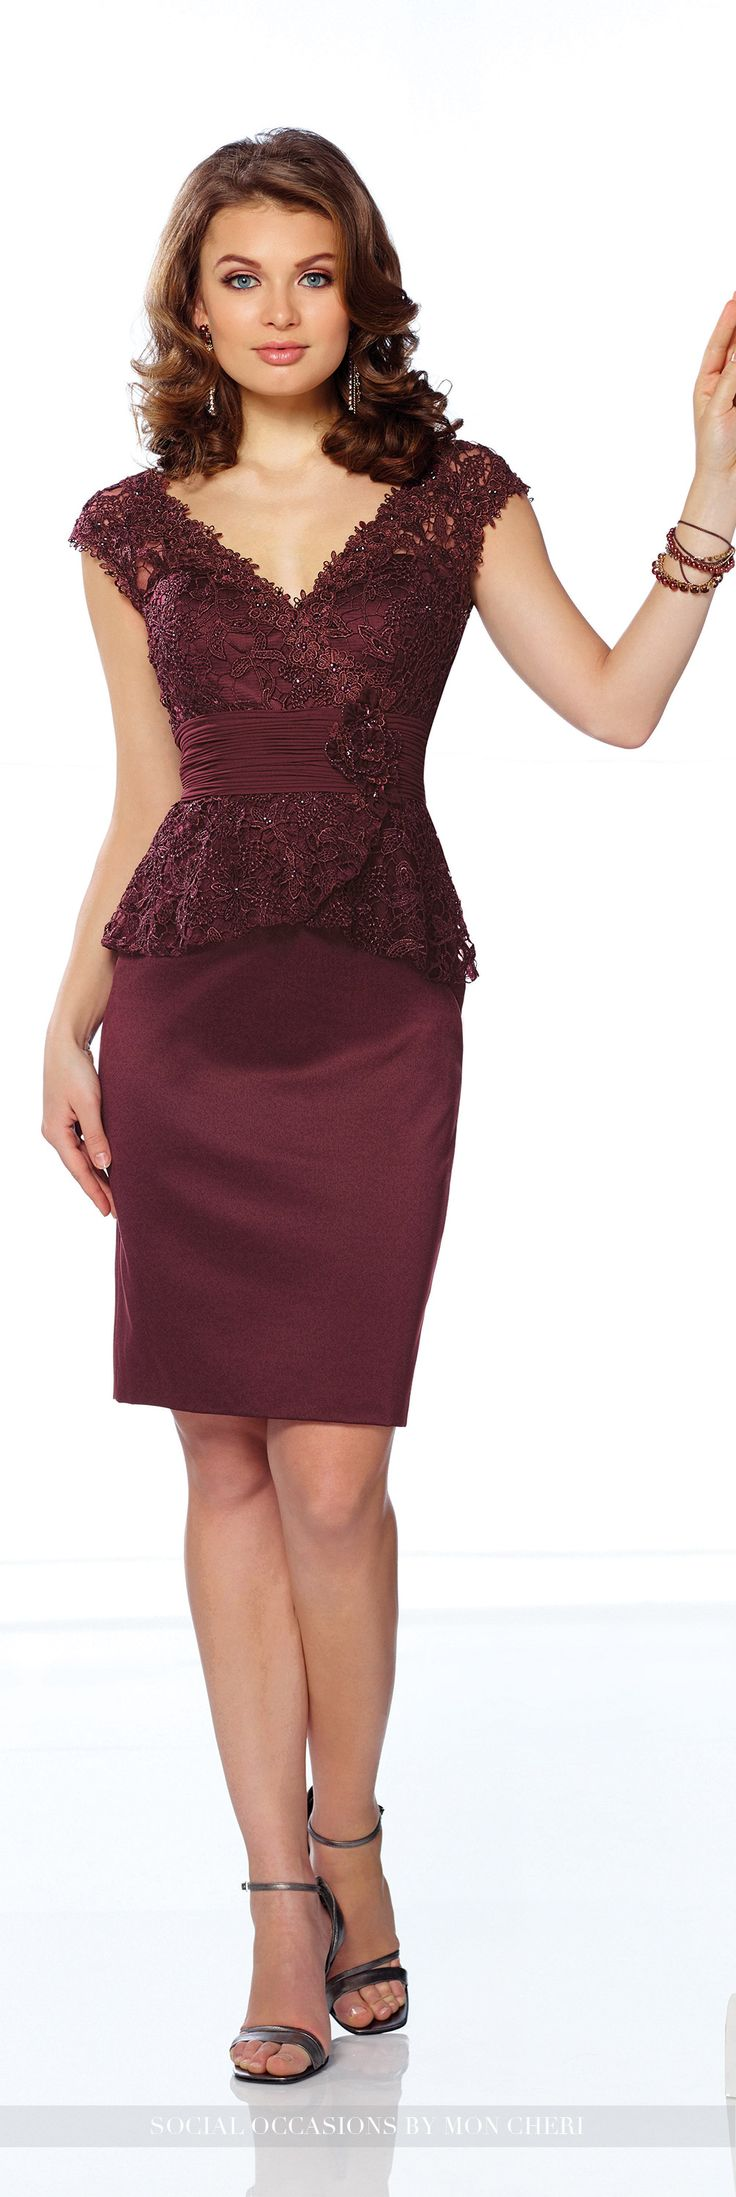 Short Evening Dresses by Mon Cheri - Fall 2016 - Style No. 216883 - wine short evening dress with lace peplum bodice and satin skirt